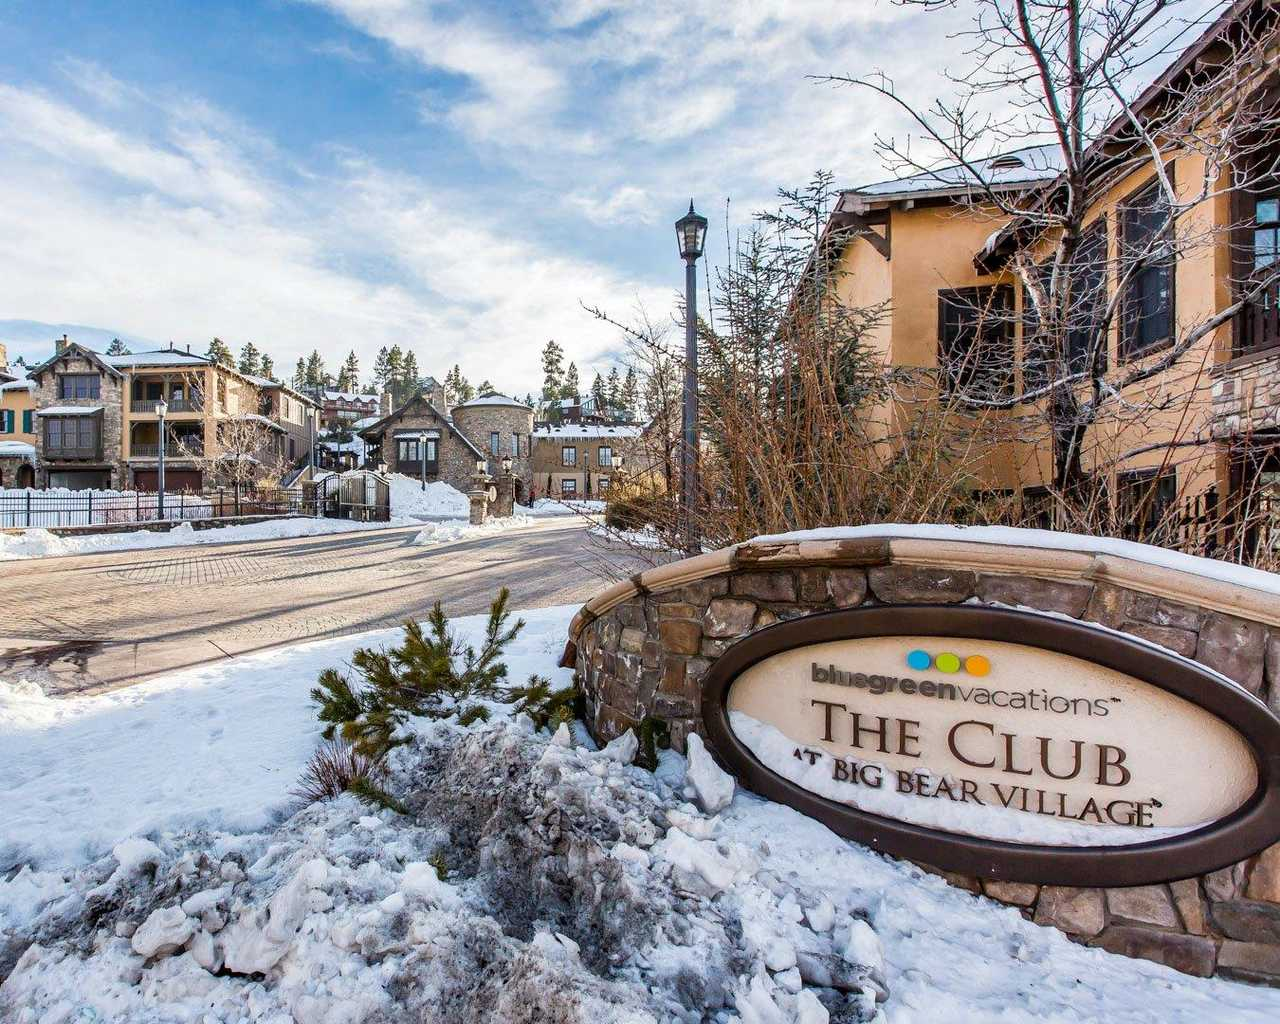 Bluegreen Vacations Big Bear Village, Ascend Resort Collection